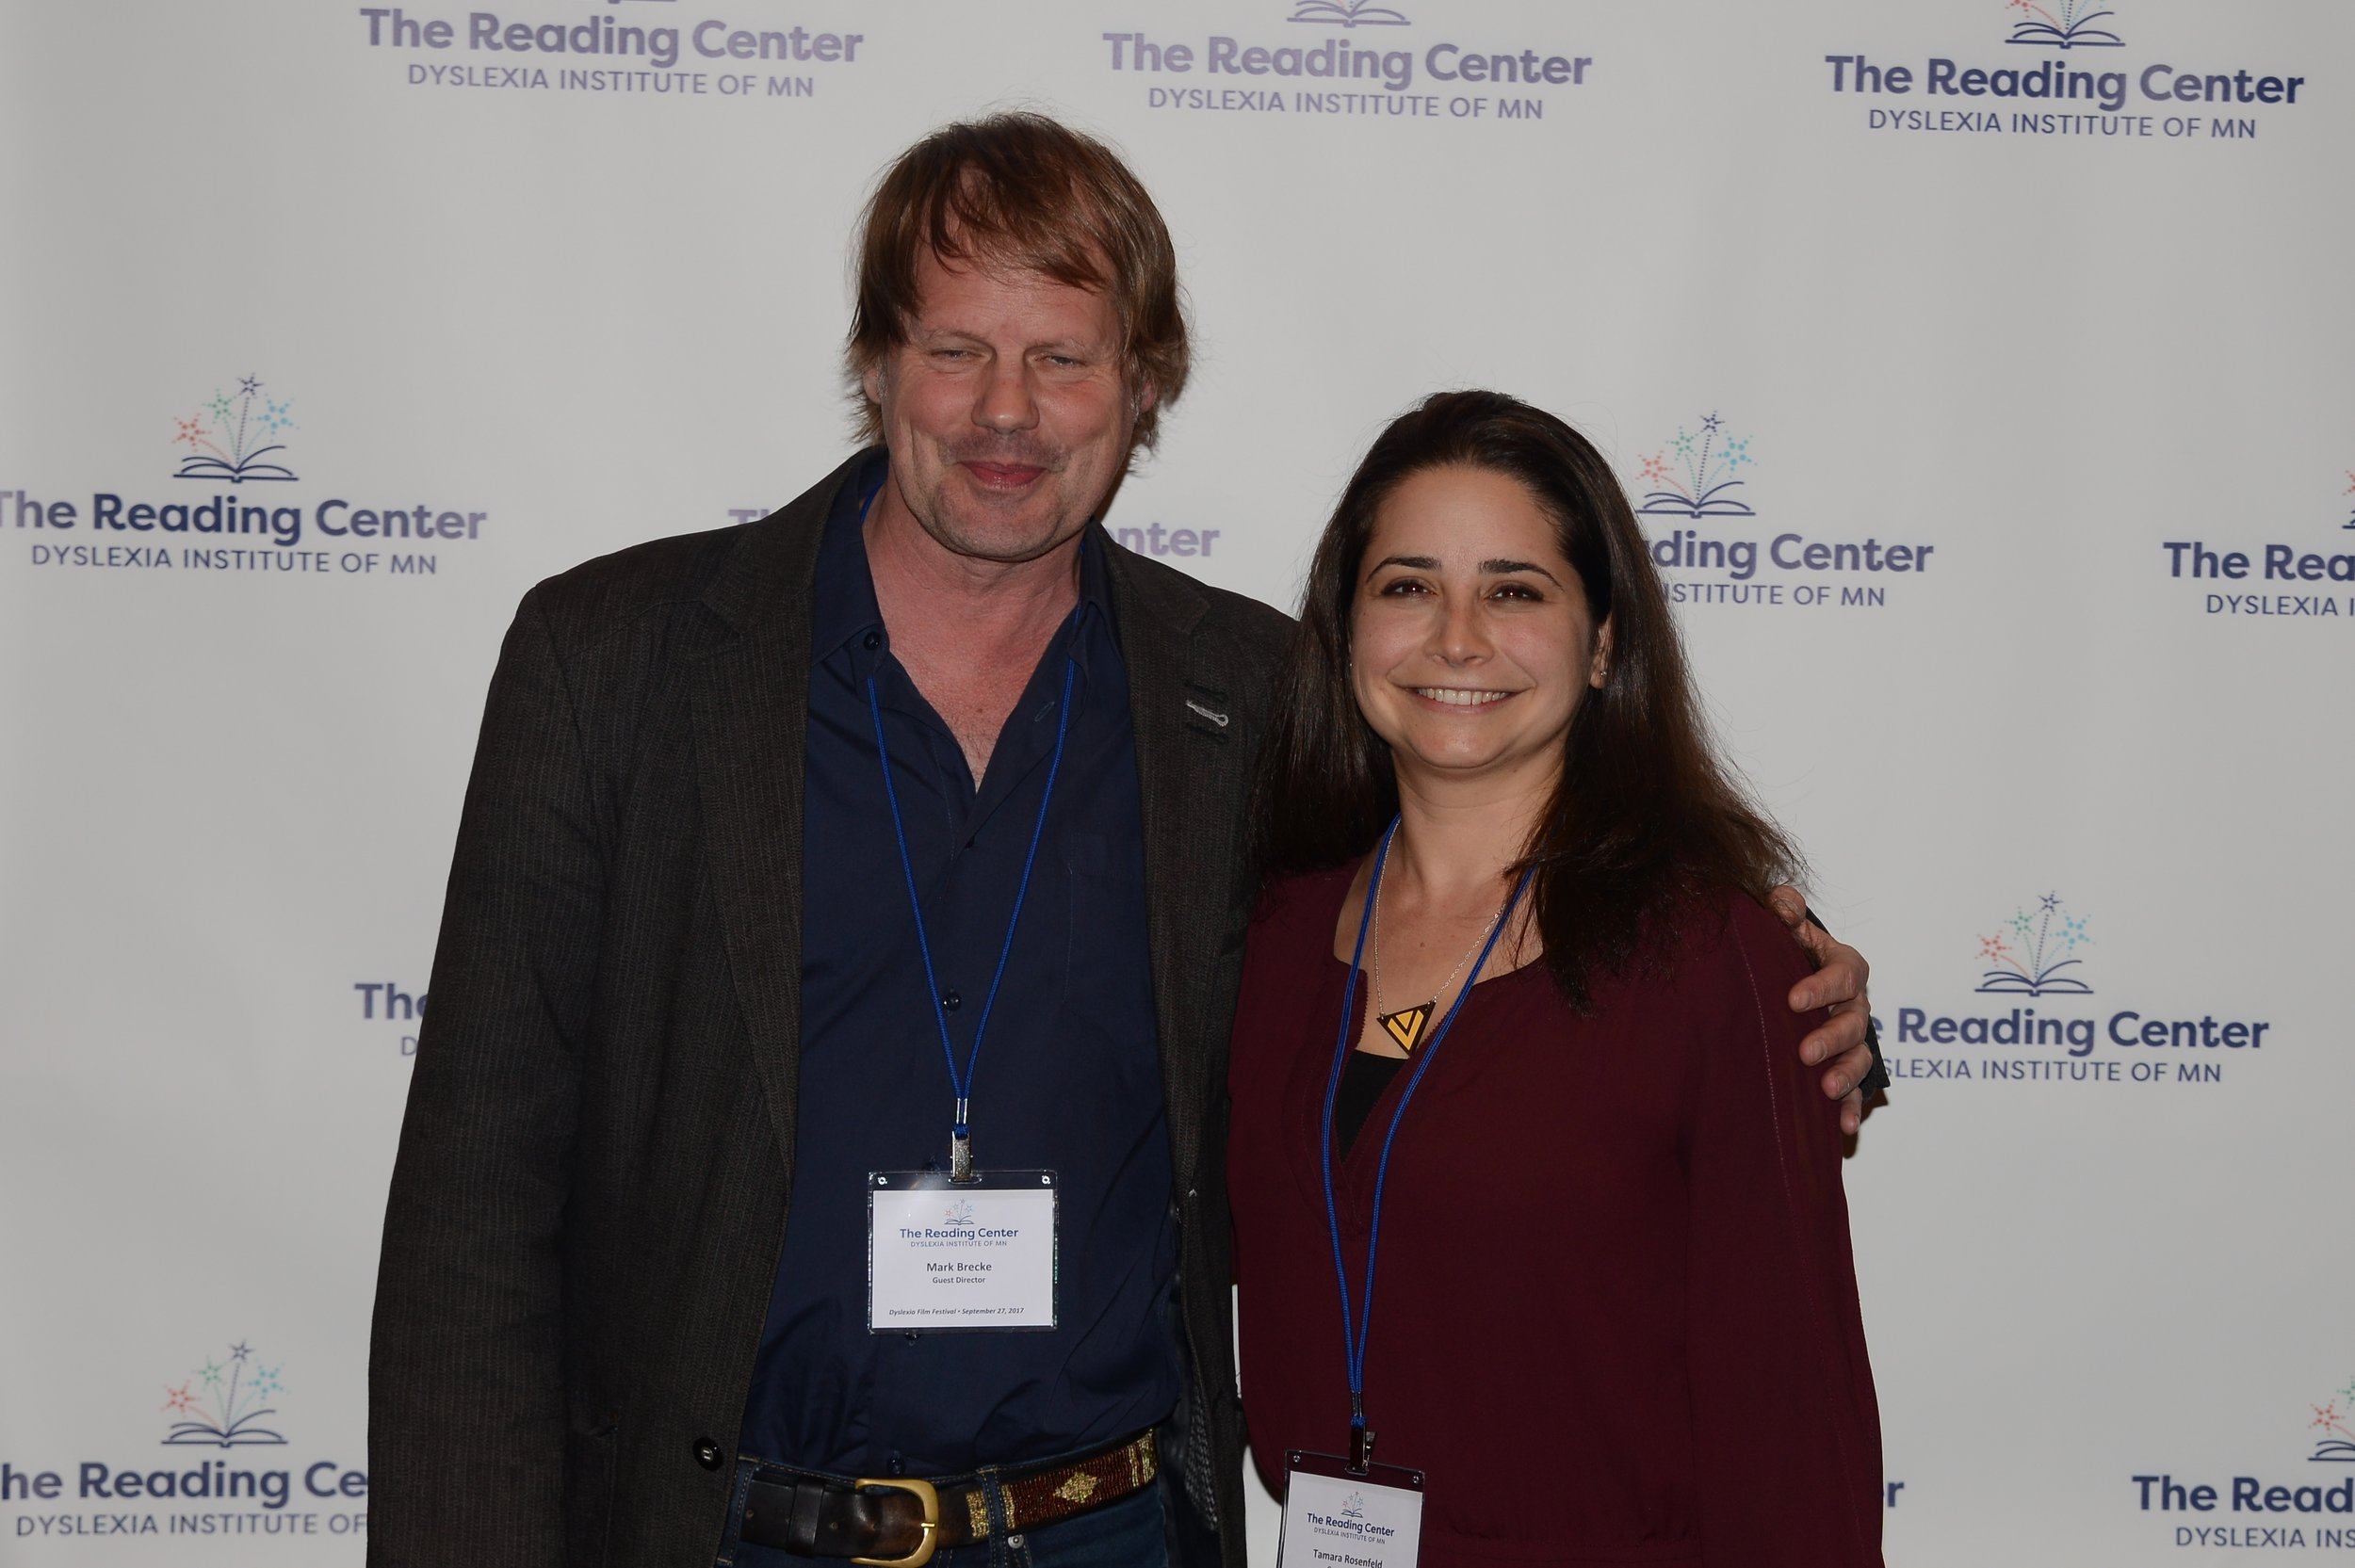 Filmmakers Mark Brecke and Tamara Rosenfeld